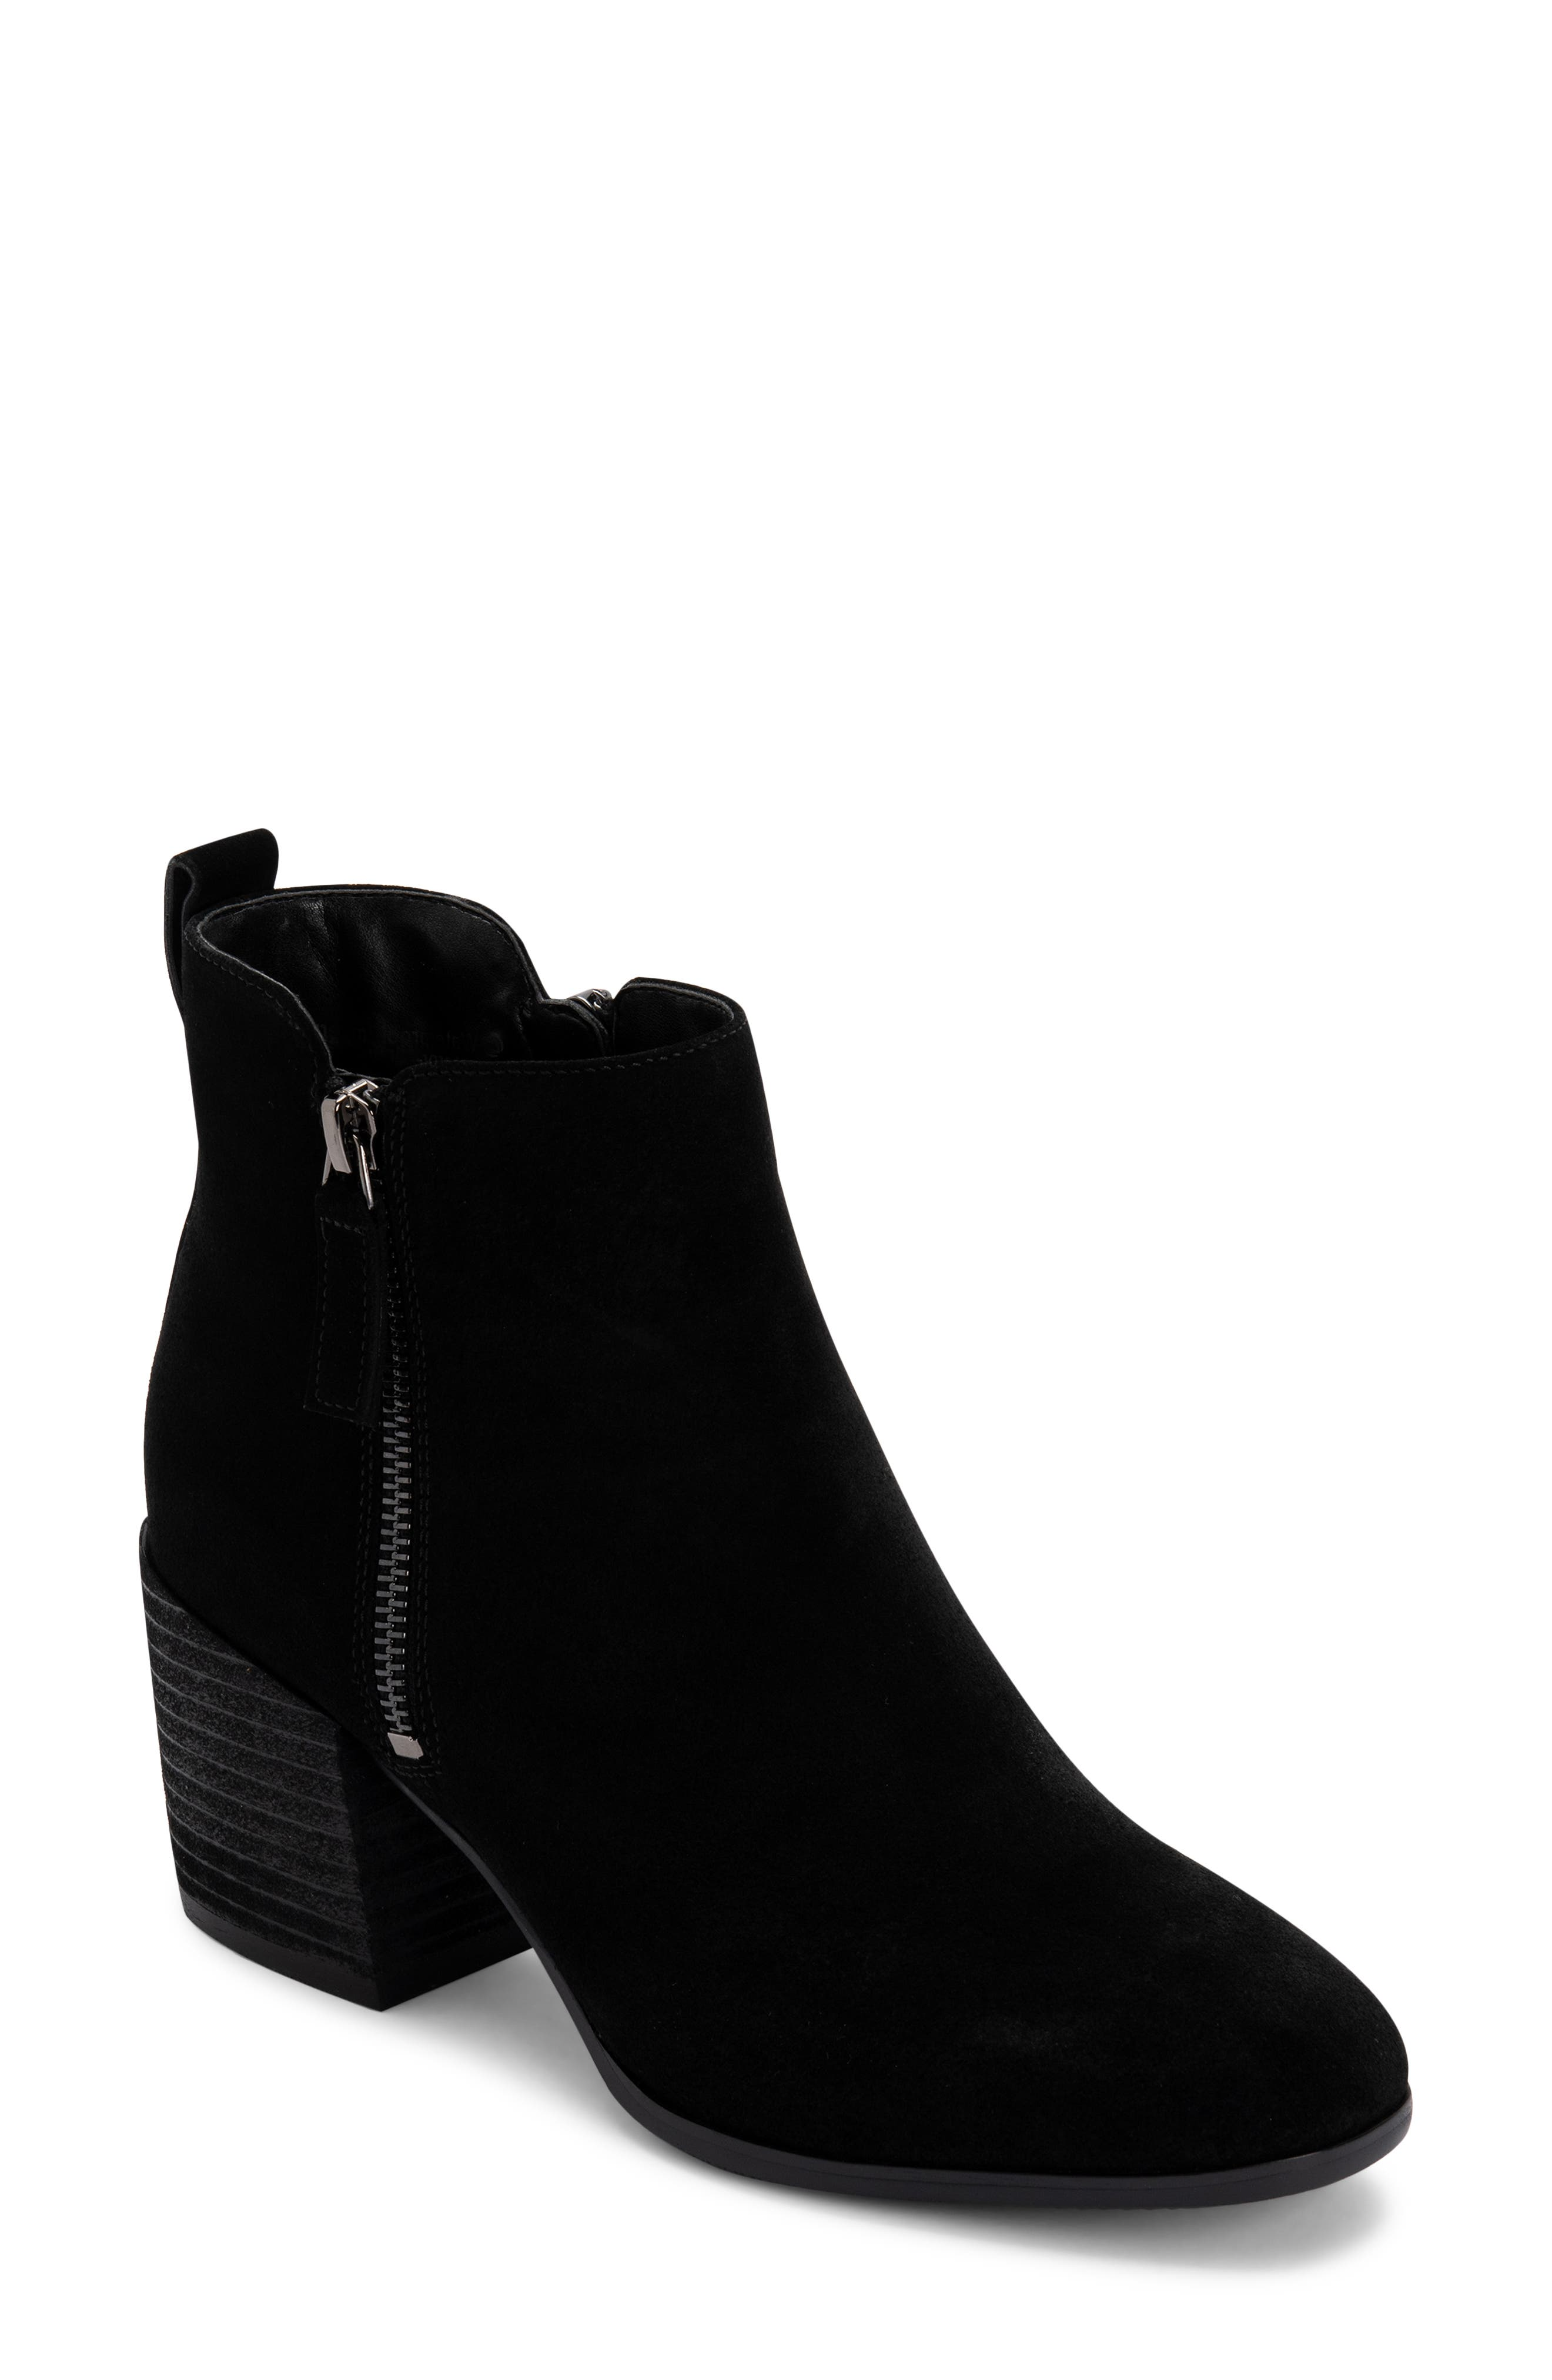 Caterina Heeled Boots Black Booties Black Ankle Boots High Heeled Booties Black Leather Boots Sale Winter Shoes Handmade Boots